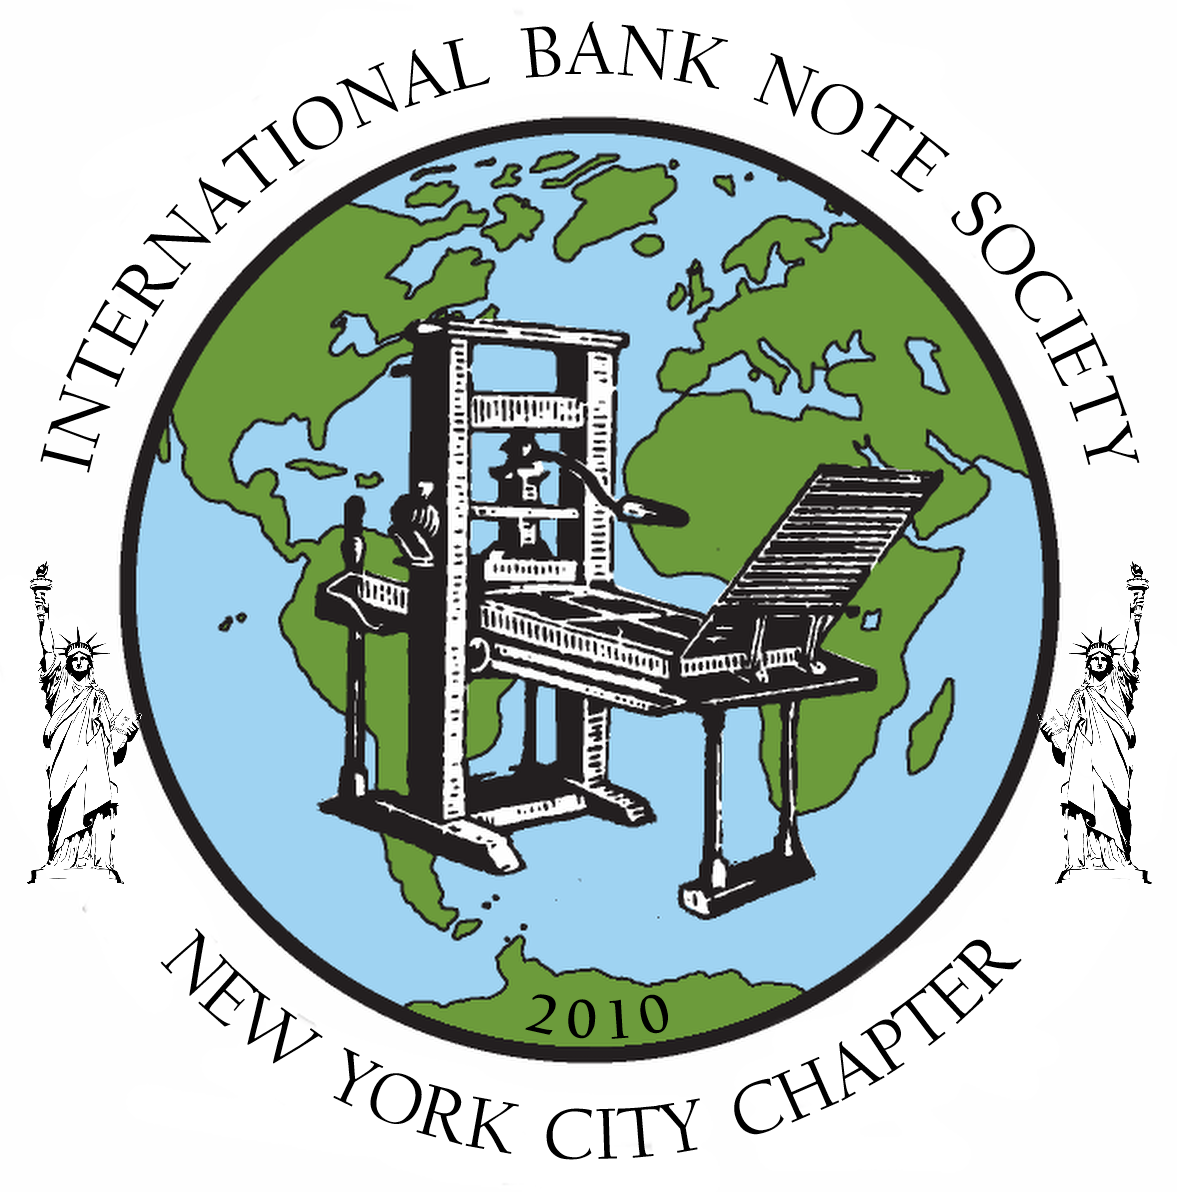 NYC CHAPTER LOGO